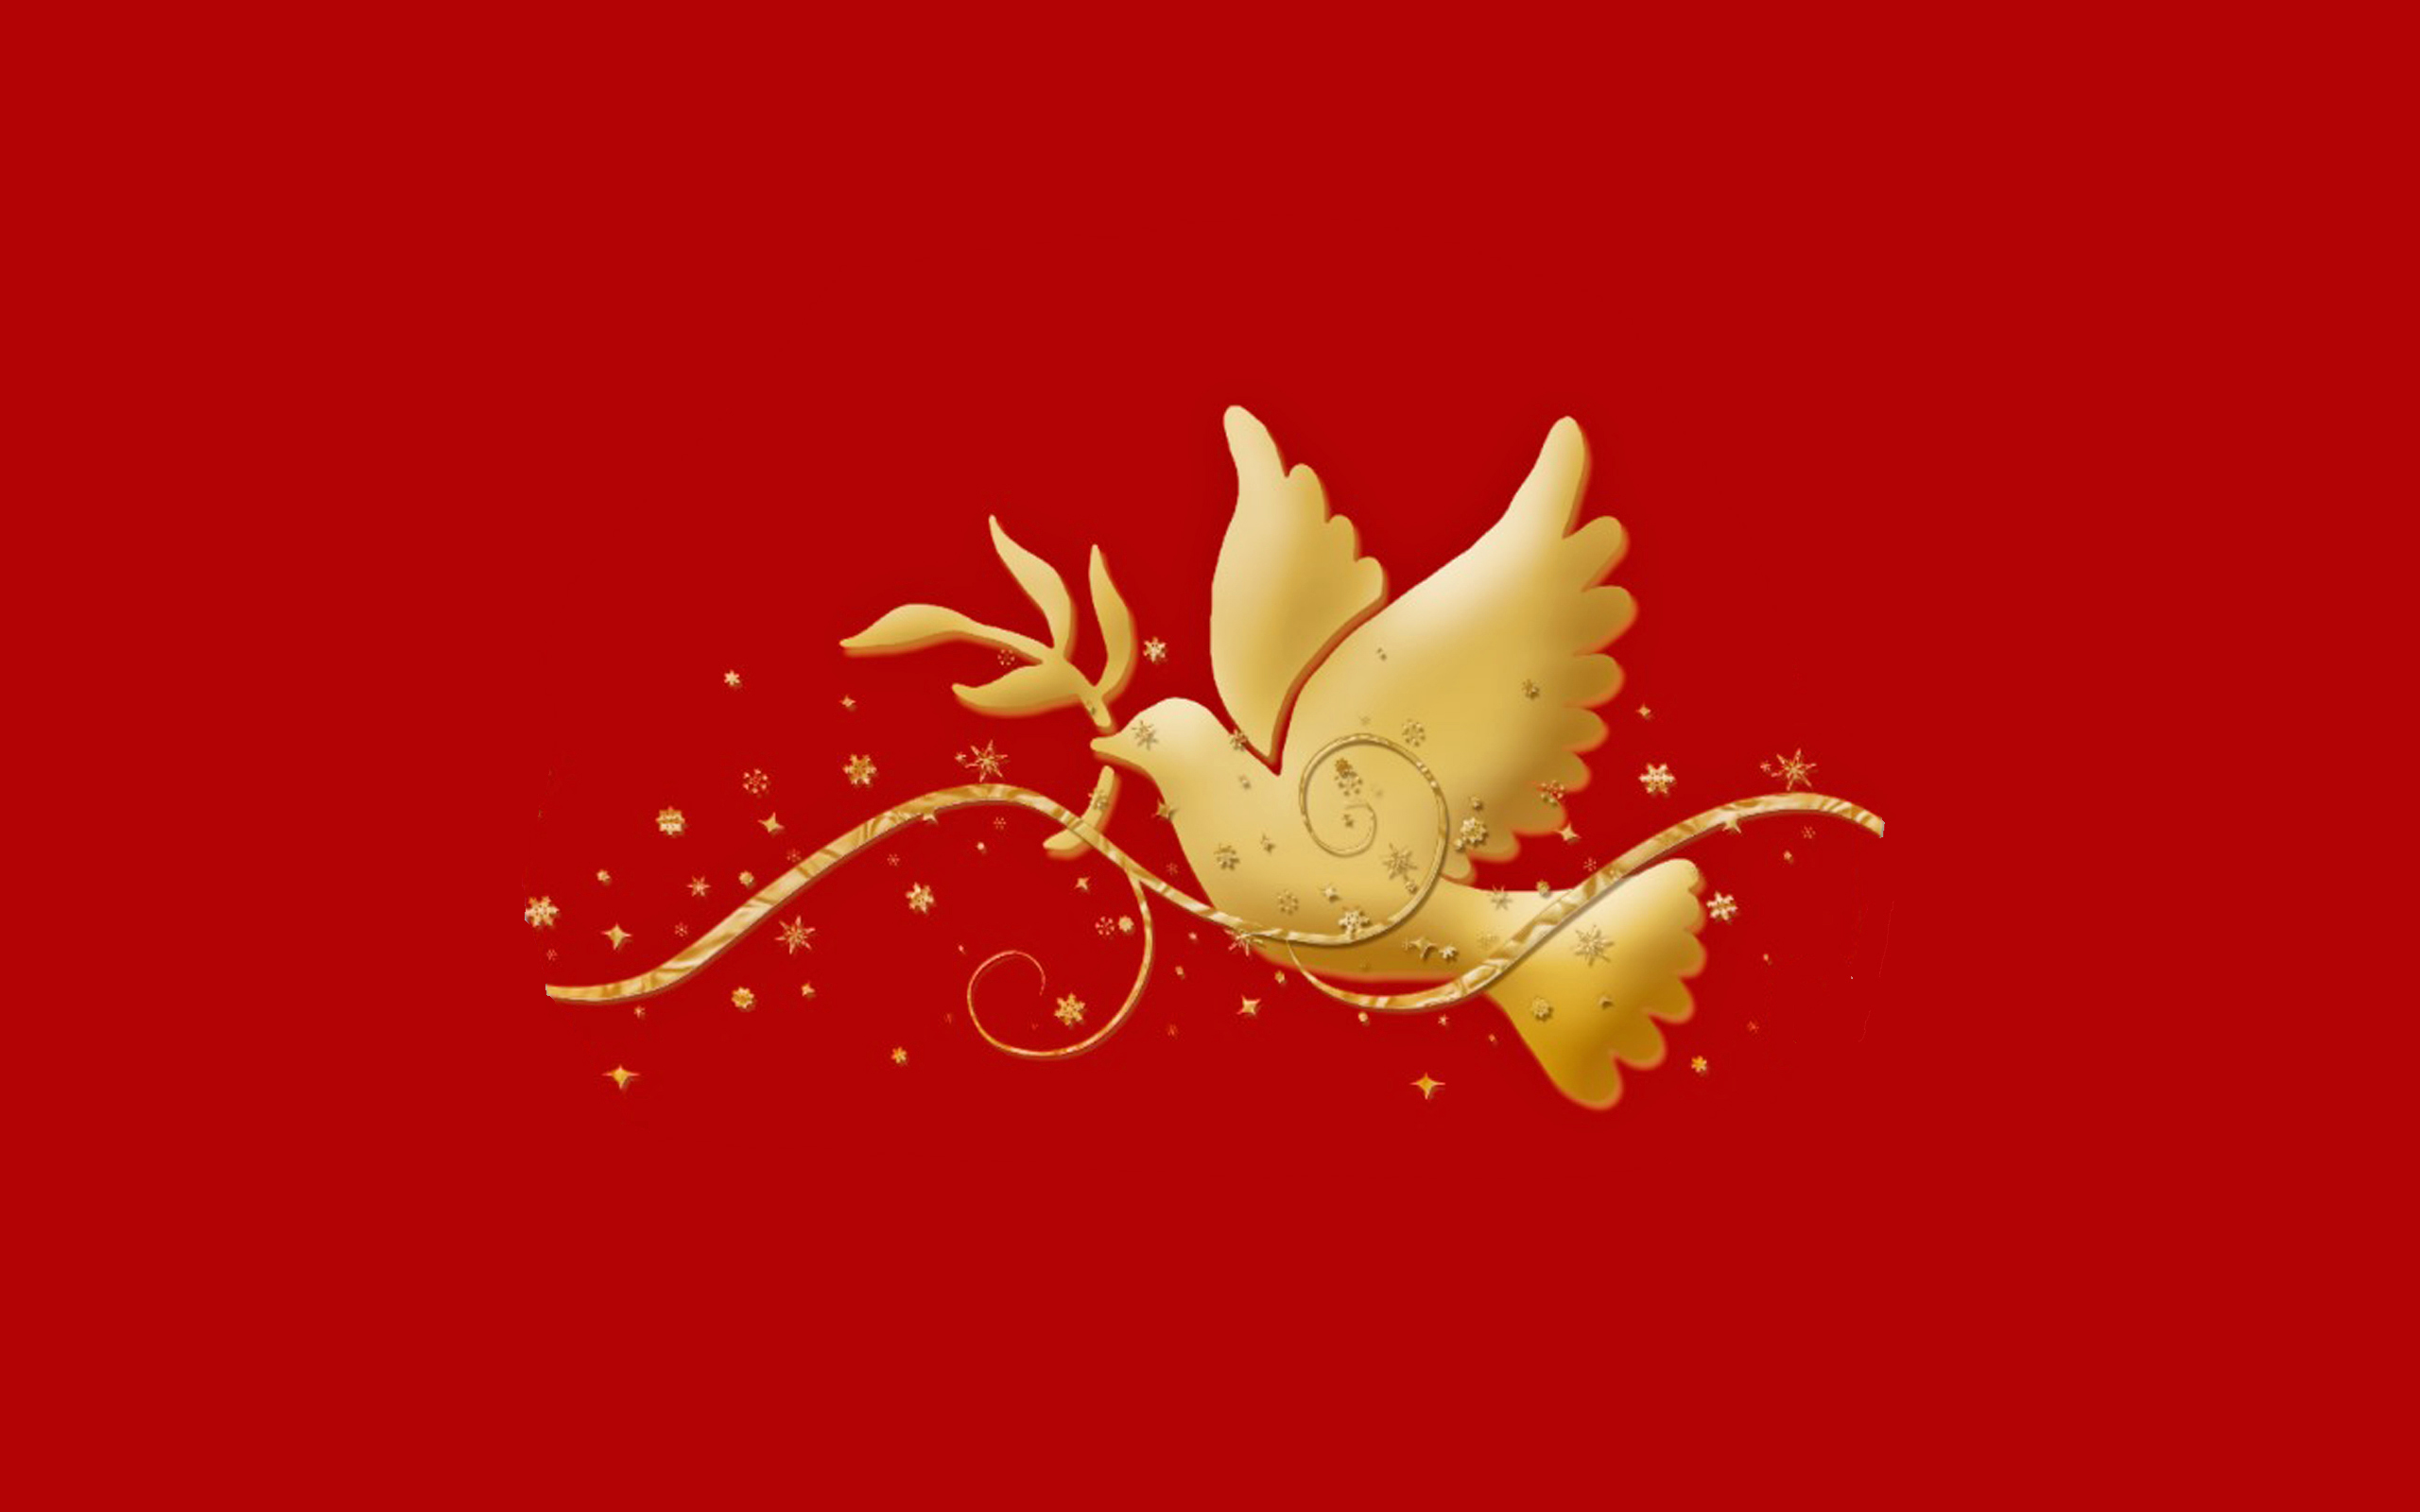 Hd Love Kiss Wallpapers For Android Gold Christmas Dove Of Peace Christian Event Stick Classic